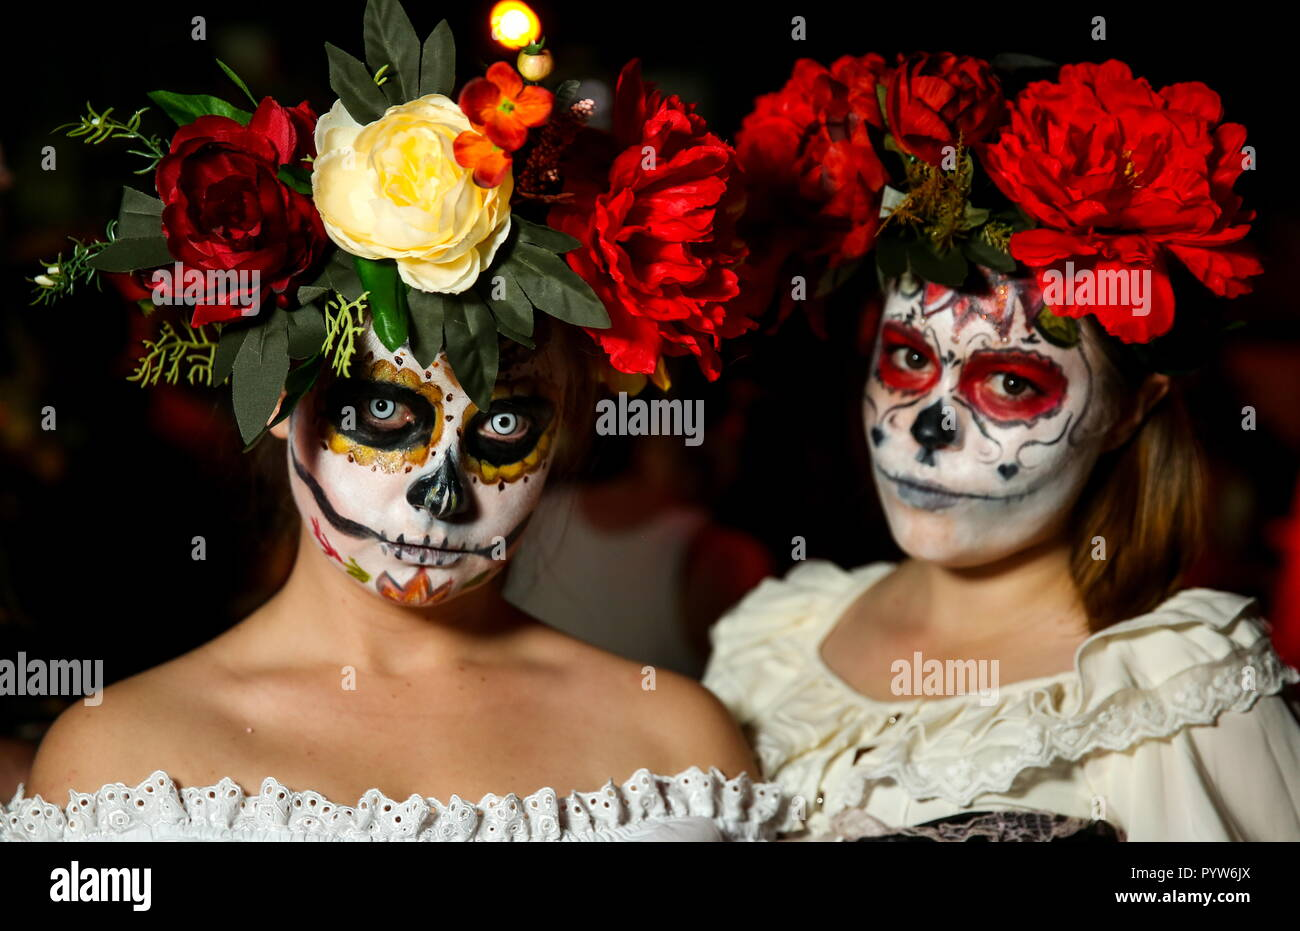 Ryazan, Russia. 27th Oct, 2018. RYAZAN, RUSSIA - OCTOBER 27, 2018: Girls wearing makeup and floral wreaths during Halloween celebrations. Alexander Ryumin/TASS Credit: ITAR-TASS News Agency/Alamy Live News - Stock Image